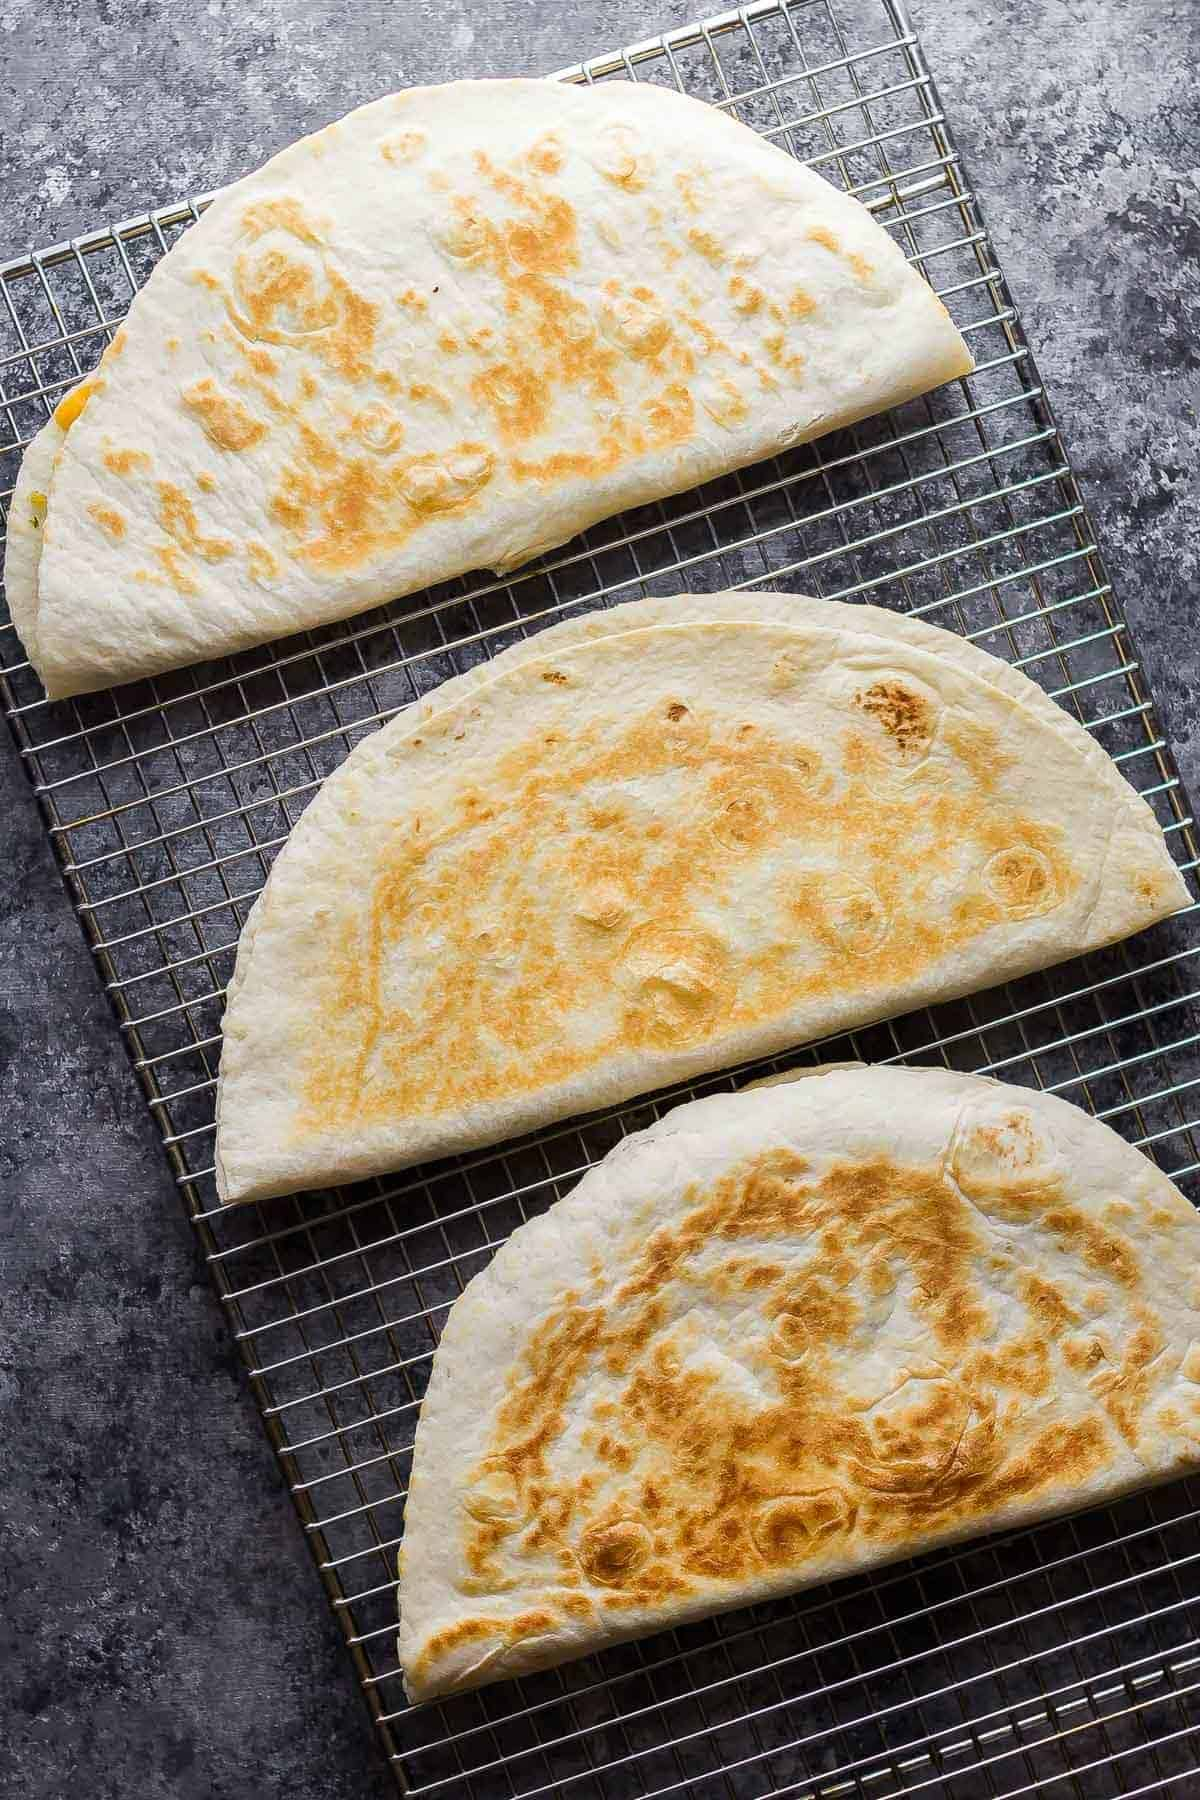 Broccoli Cheddar Breakfast Quesadillas- a tasty, freezer-friendly breakfast meal prep recipe!